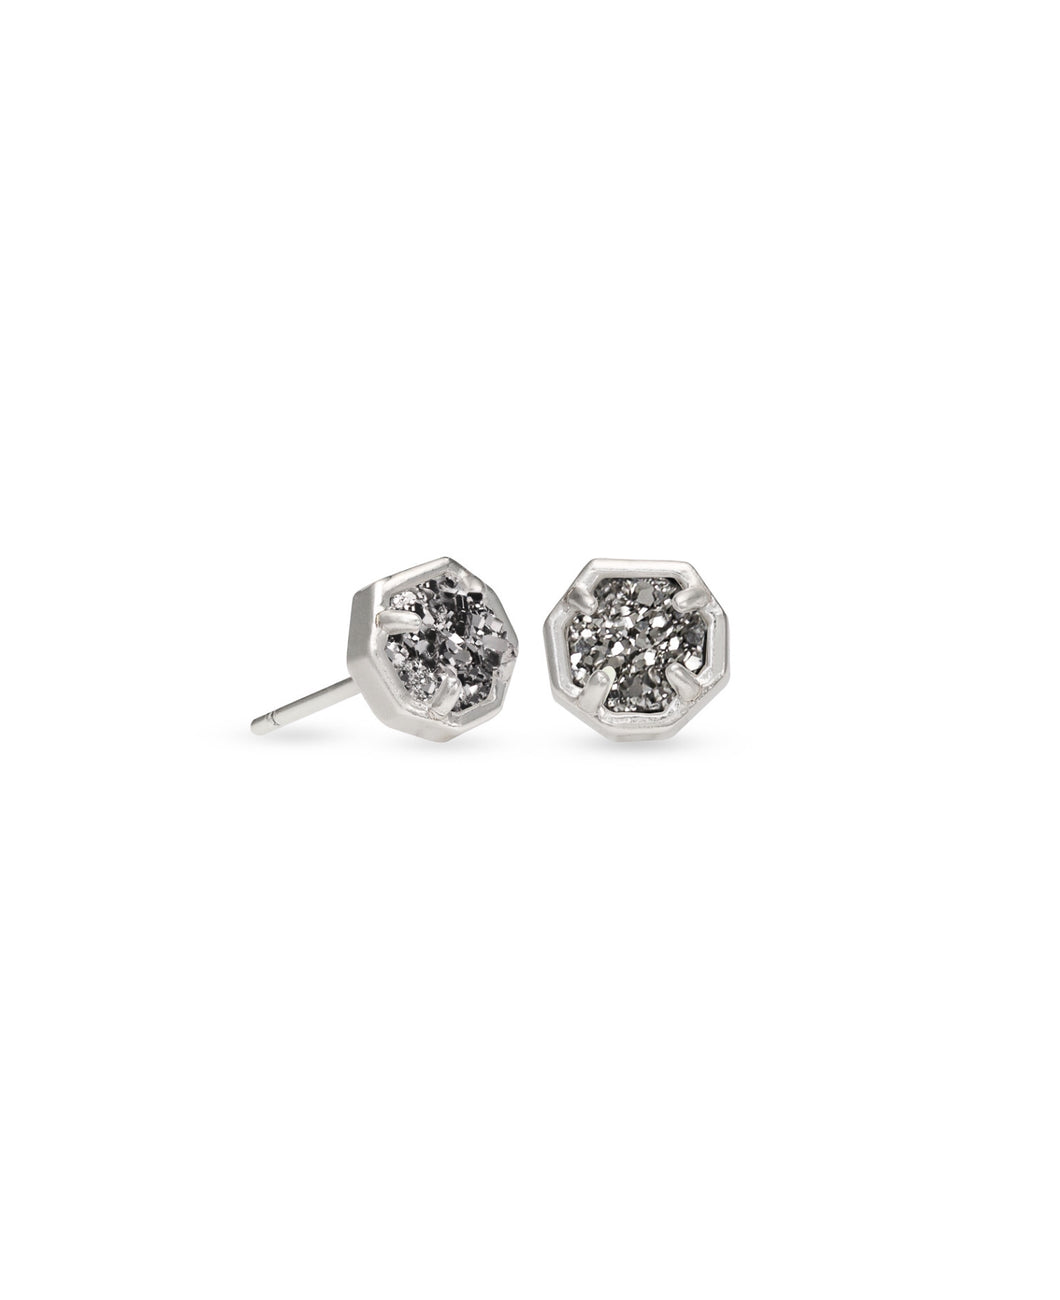 Kendra Scott: Nola Stud - Silver Platinum Drusy - The Vogue Boutique